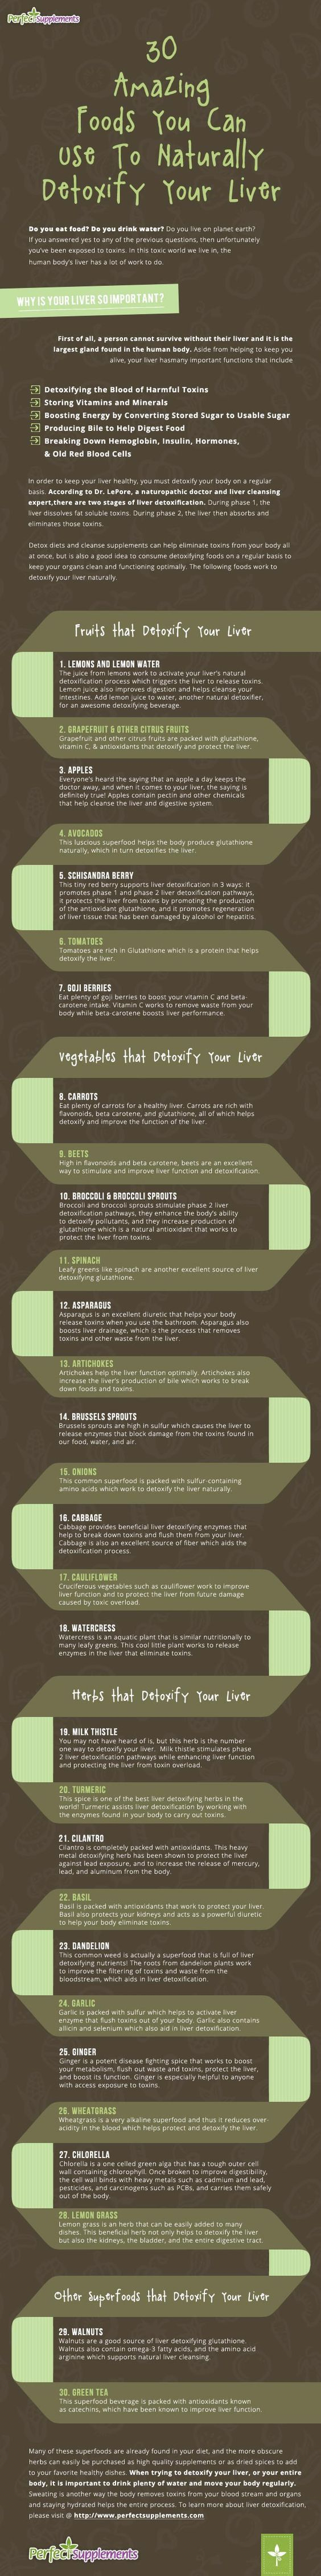 30 Foods That Naturally Detoxify Your Liver #Health #Infographic #SuperFoods: